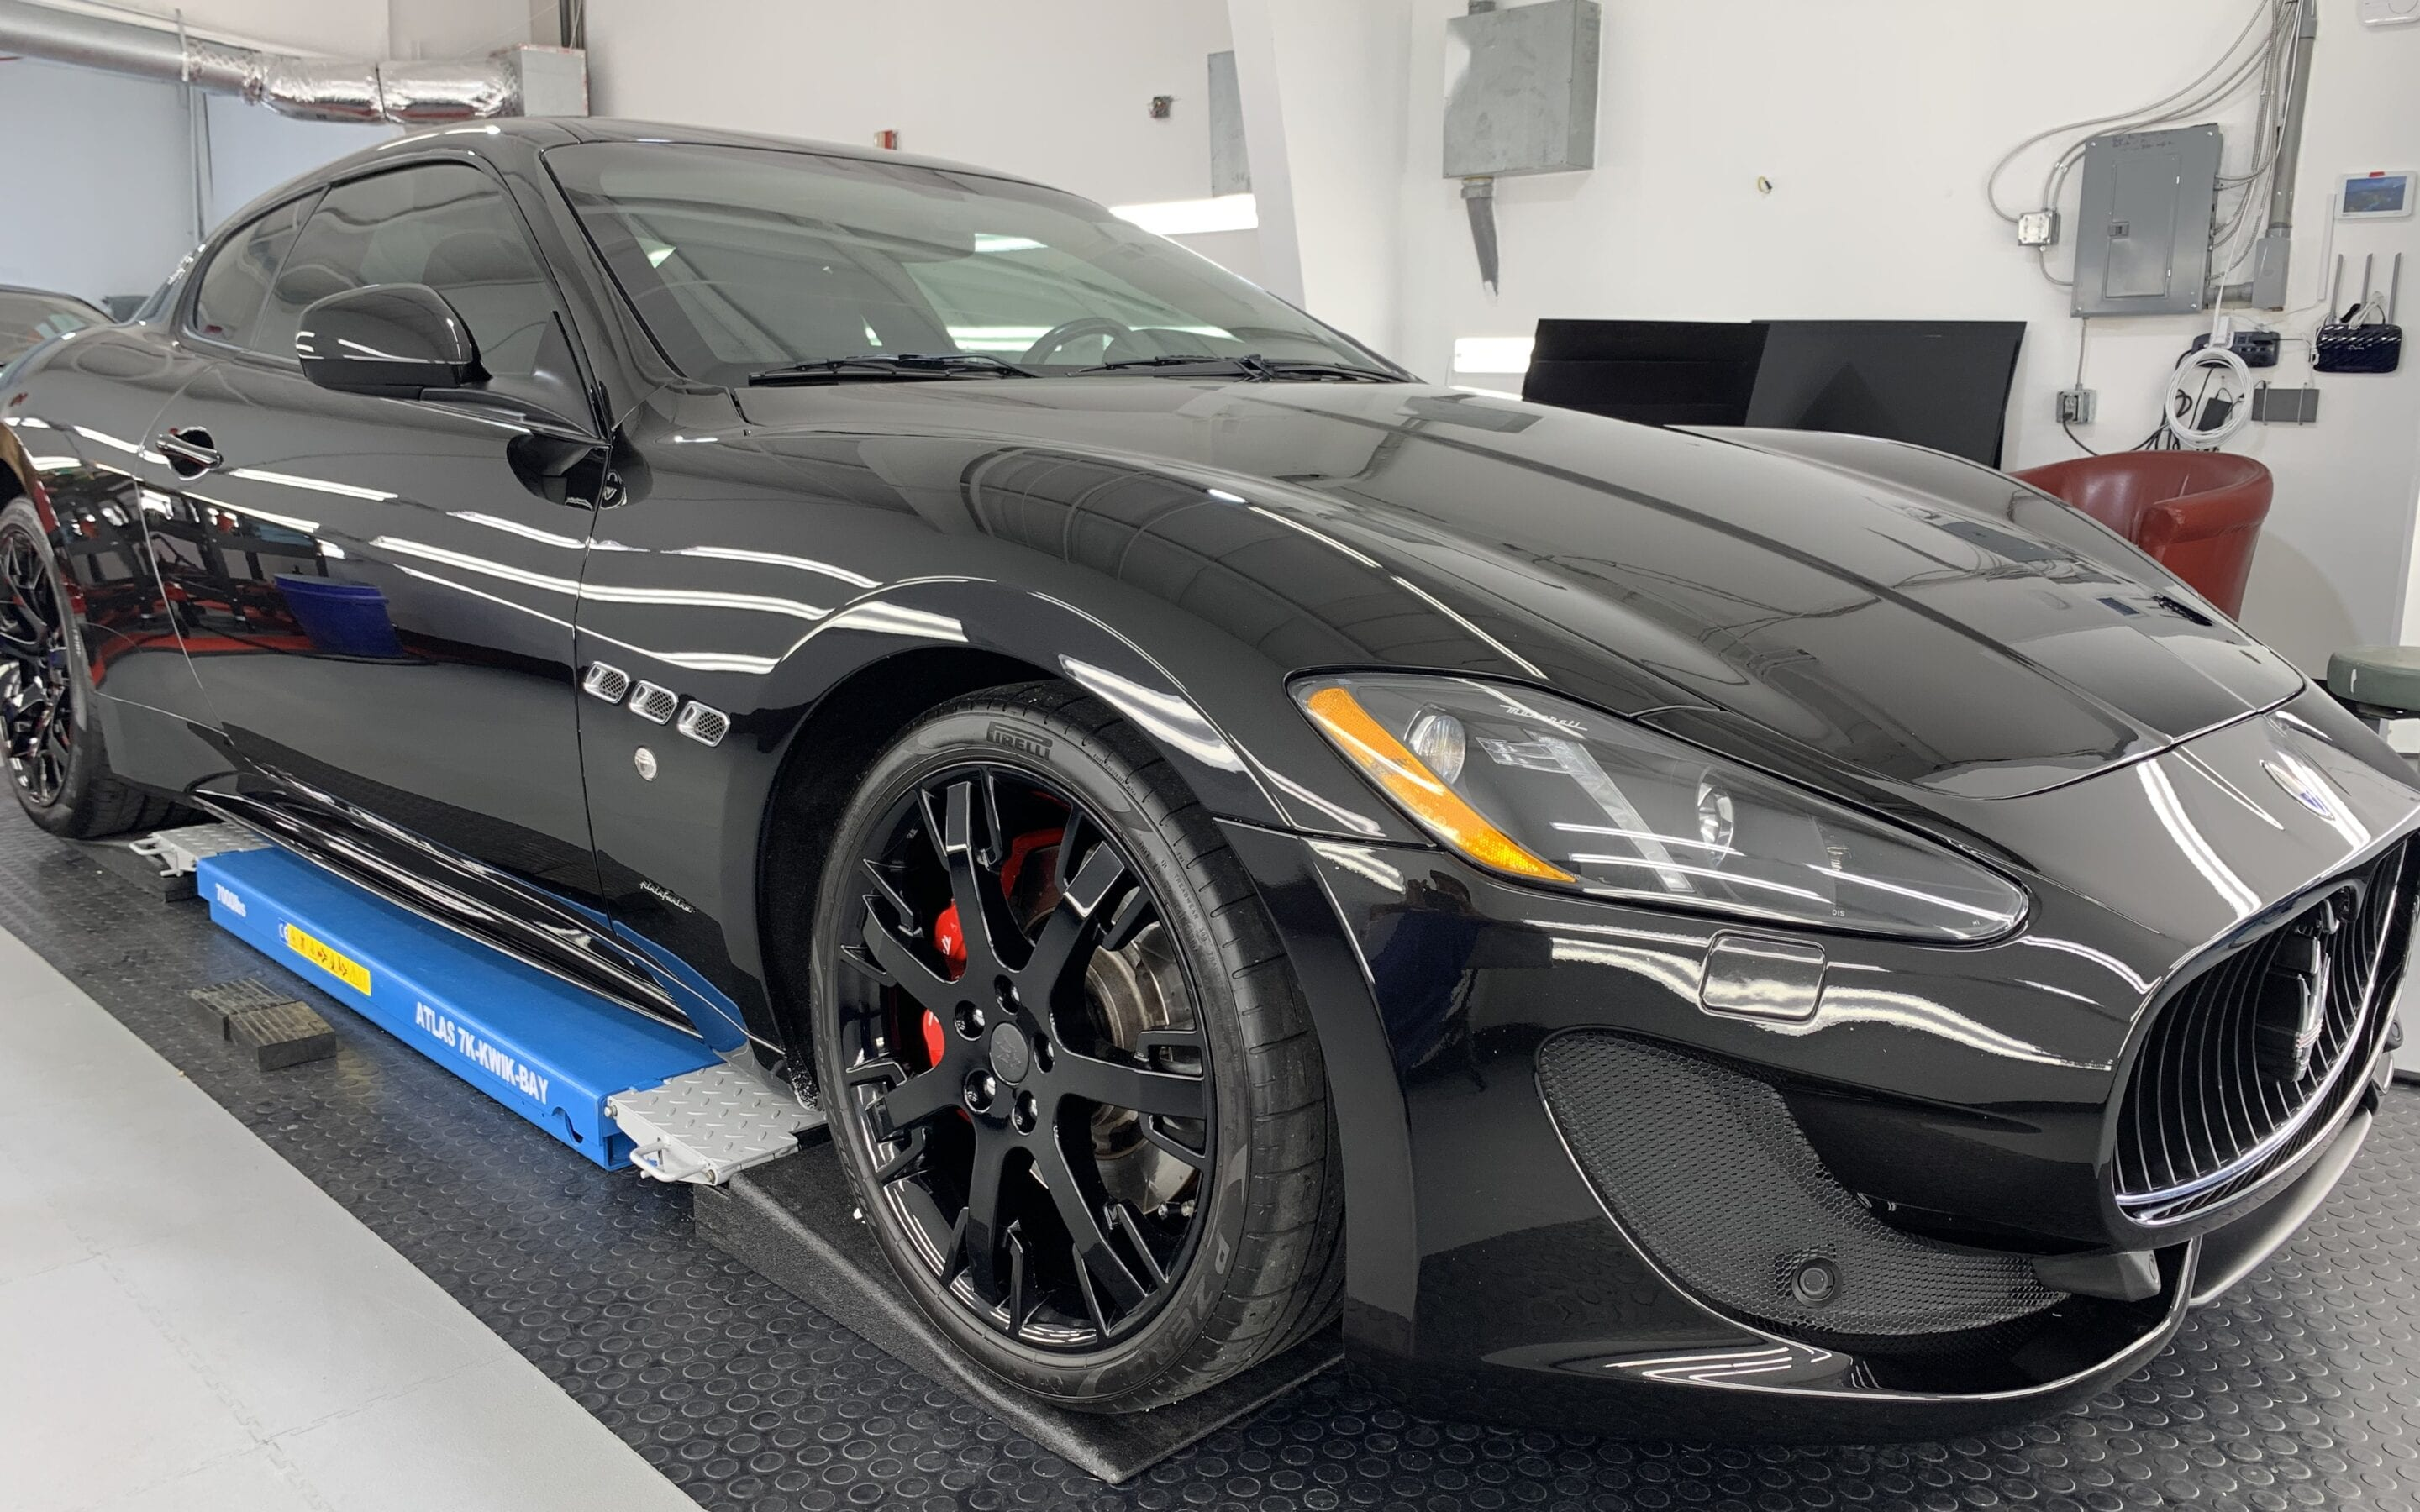 Ceramic Coating of a 2013 Maserati GranTurismo